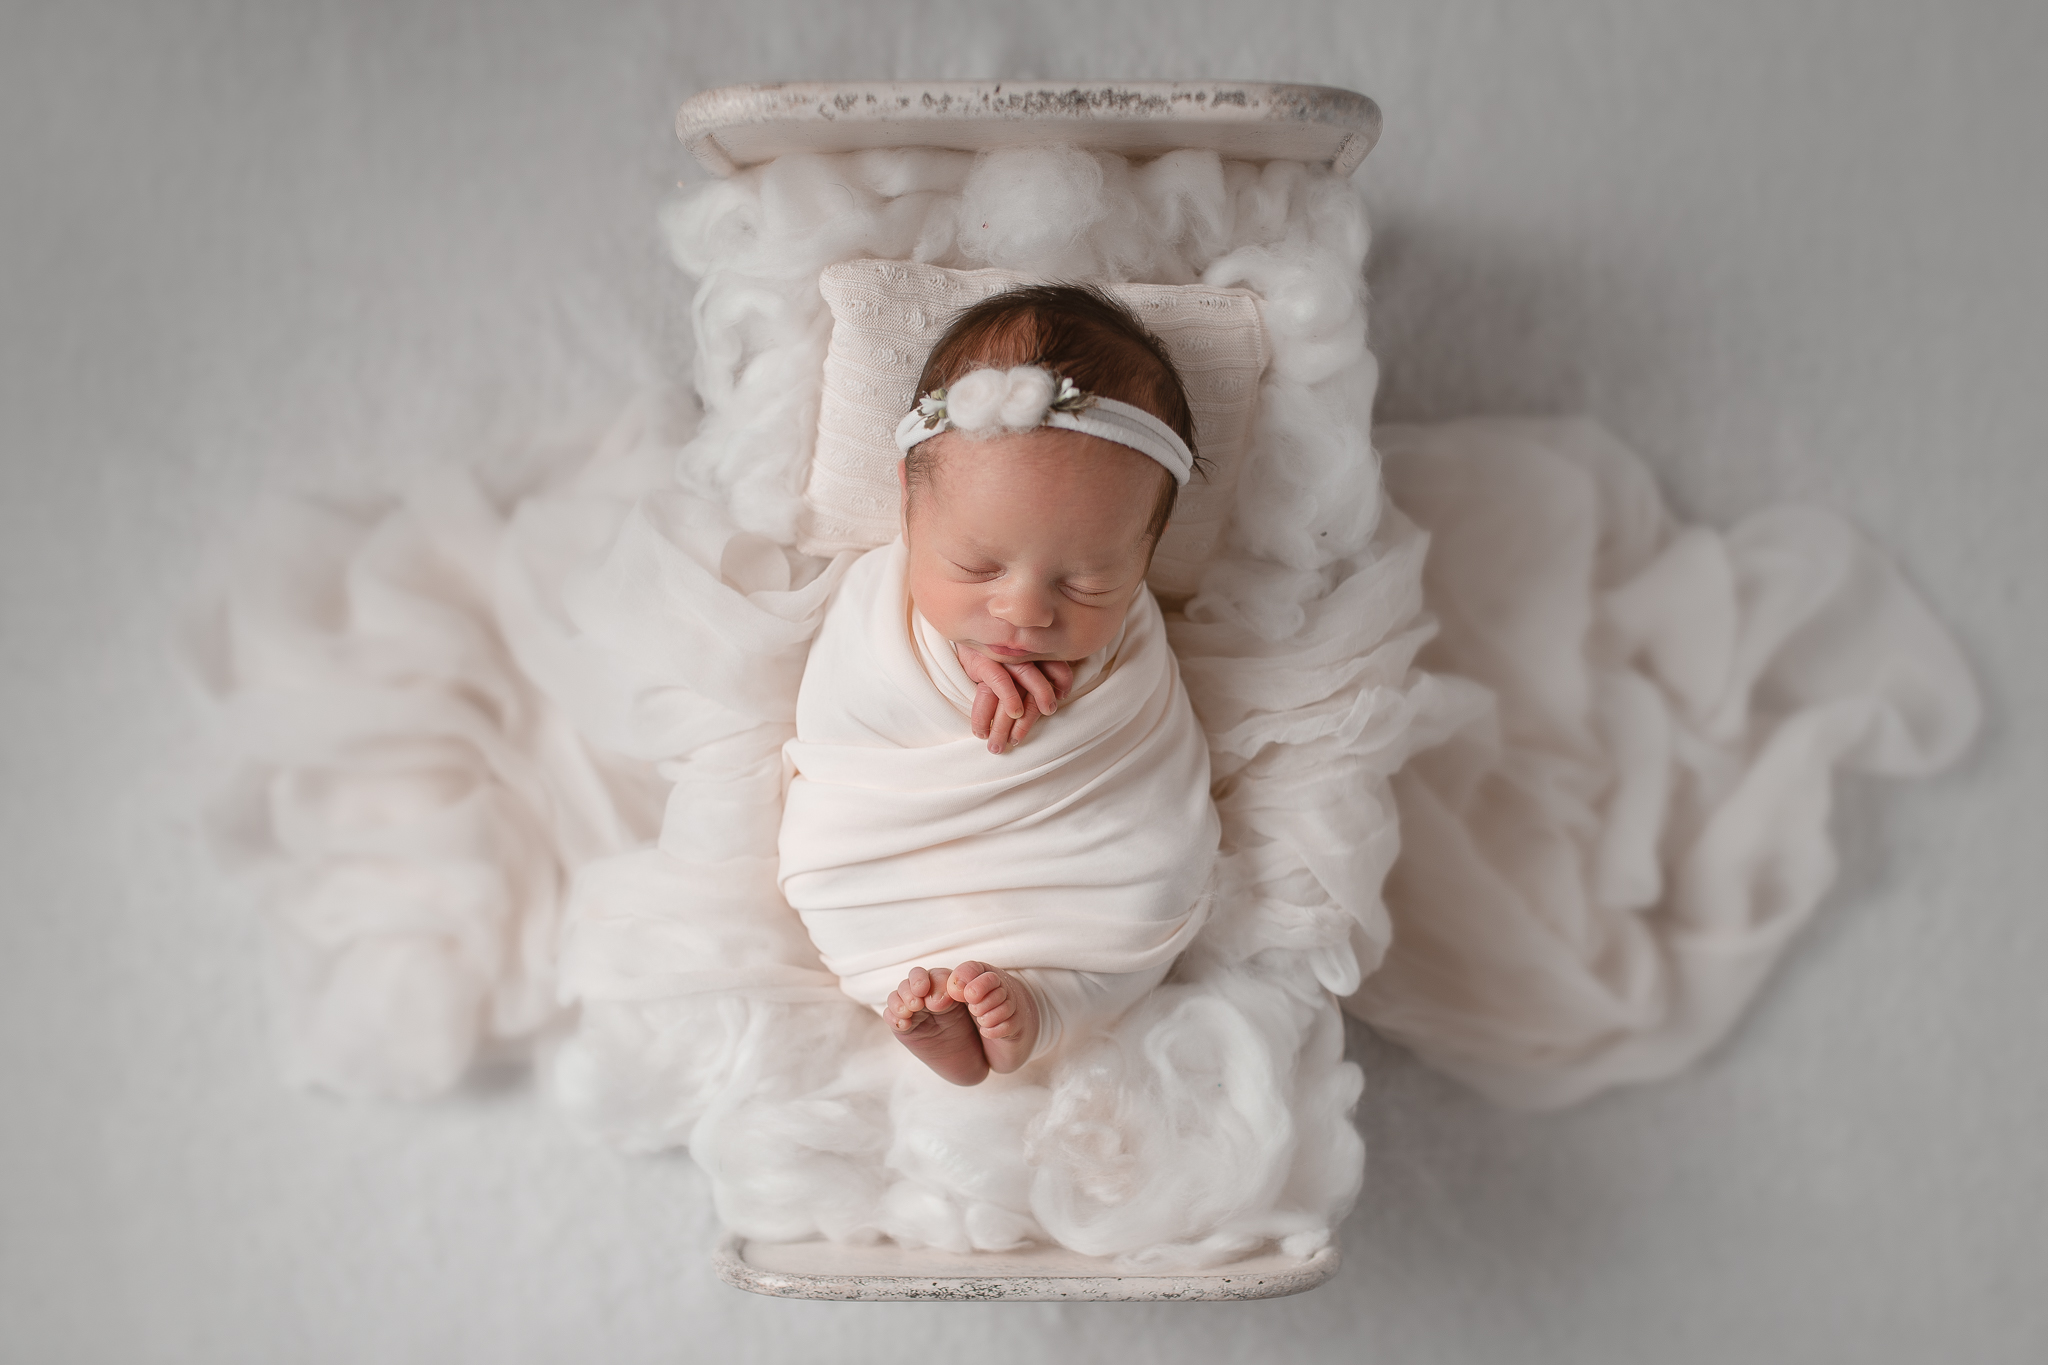 Newborn360NaomiLuciennePhotography032019-Edit.jpg